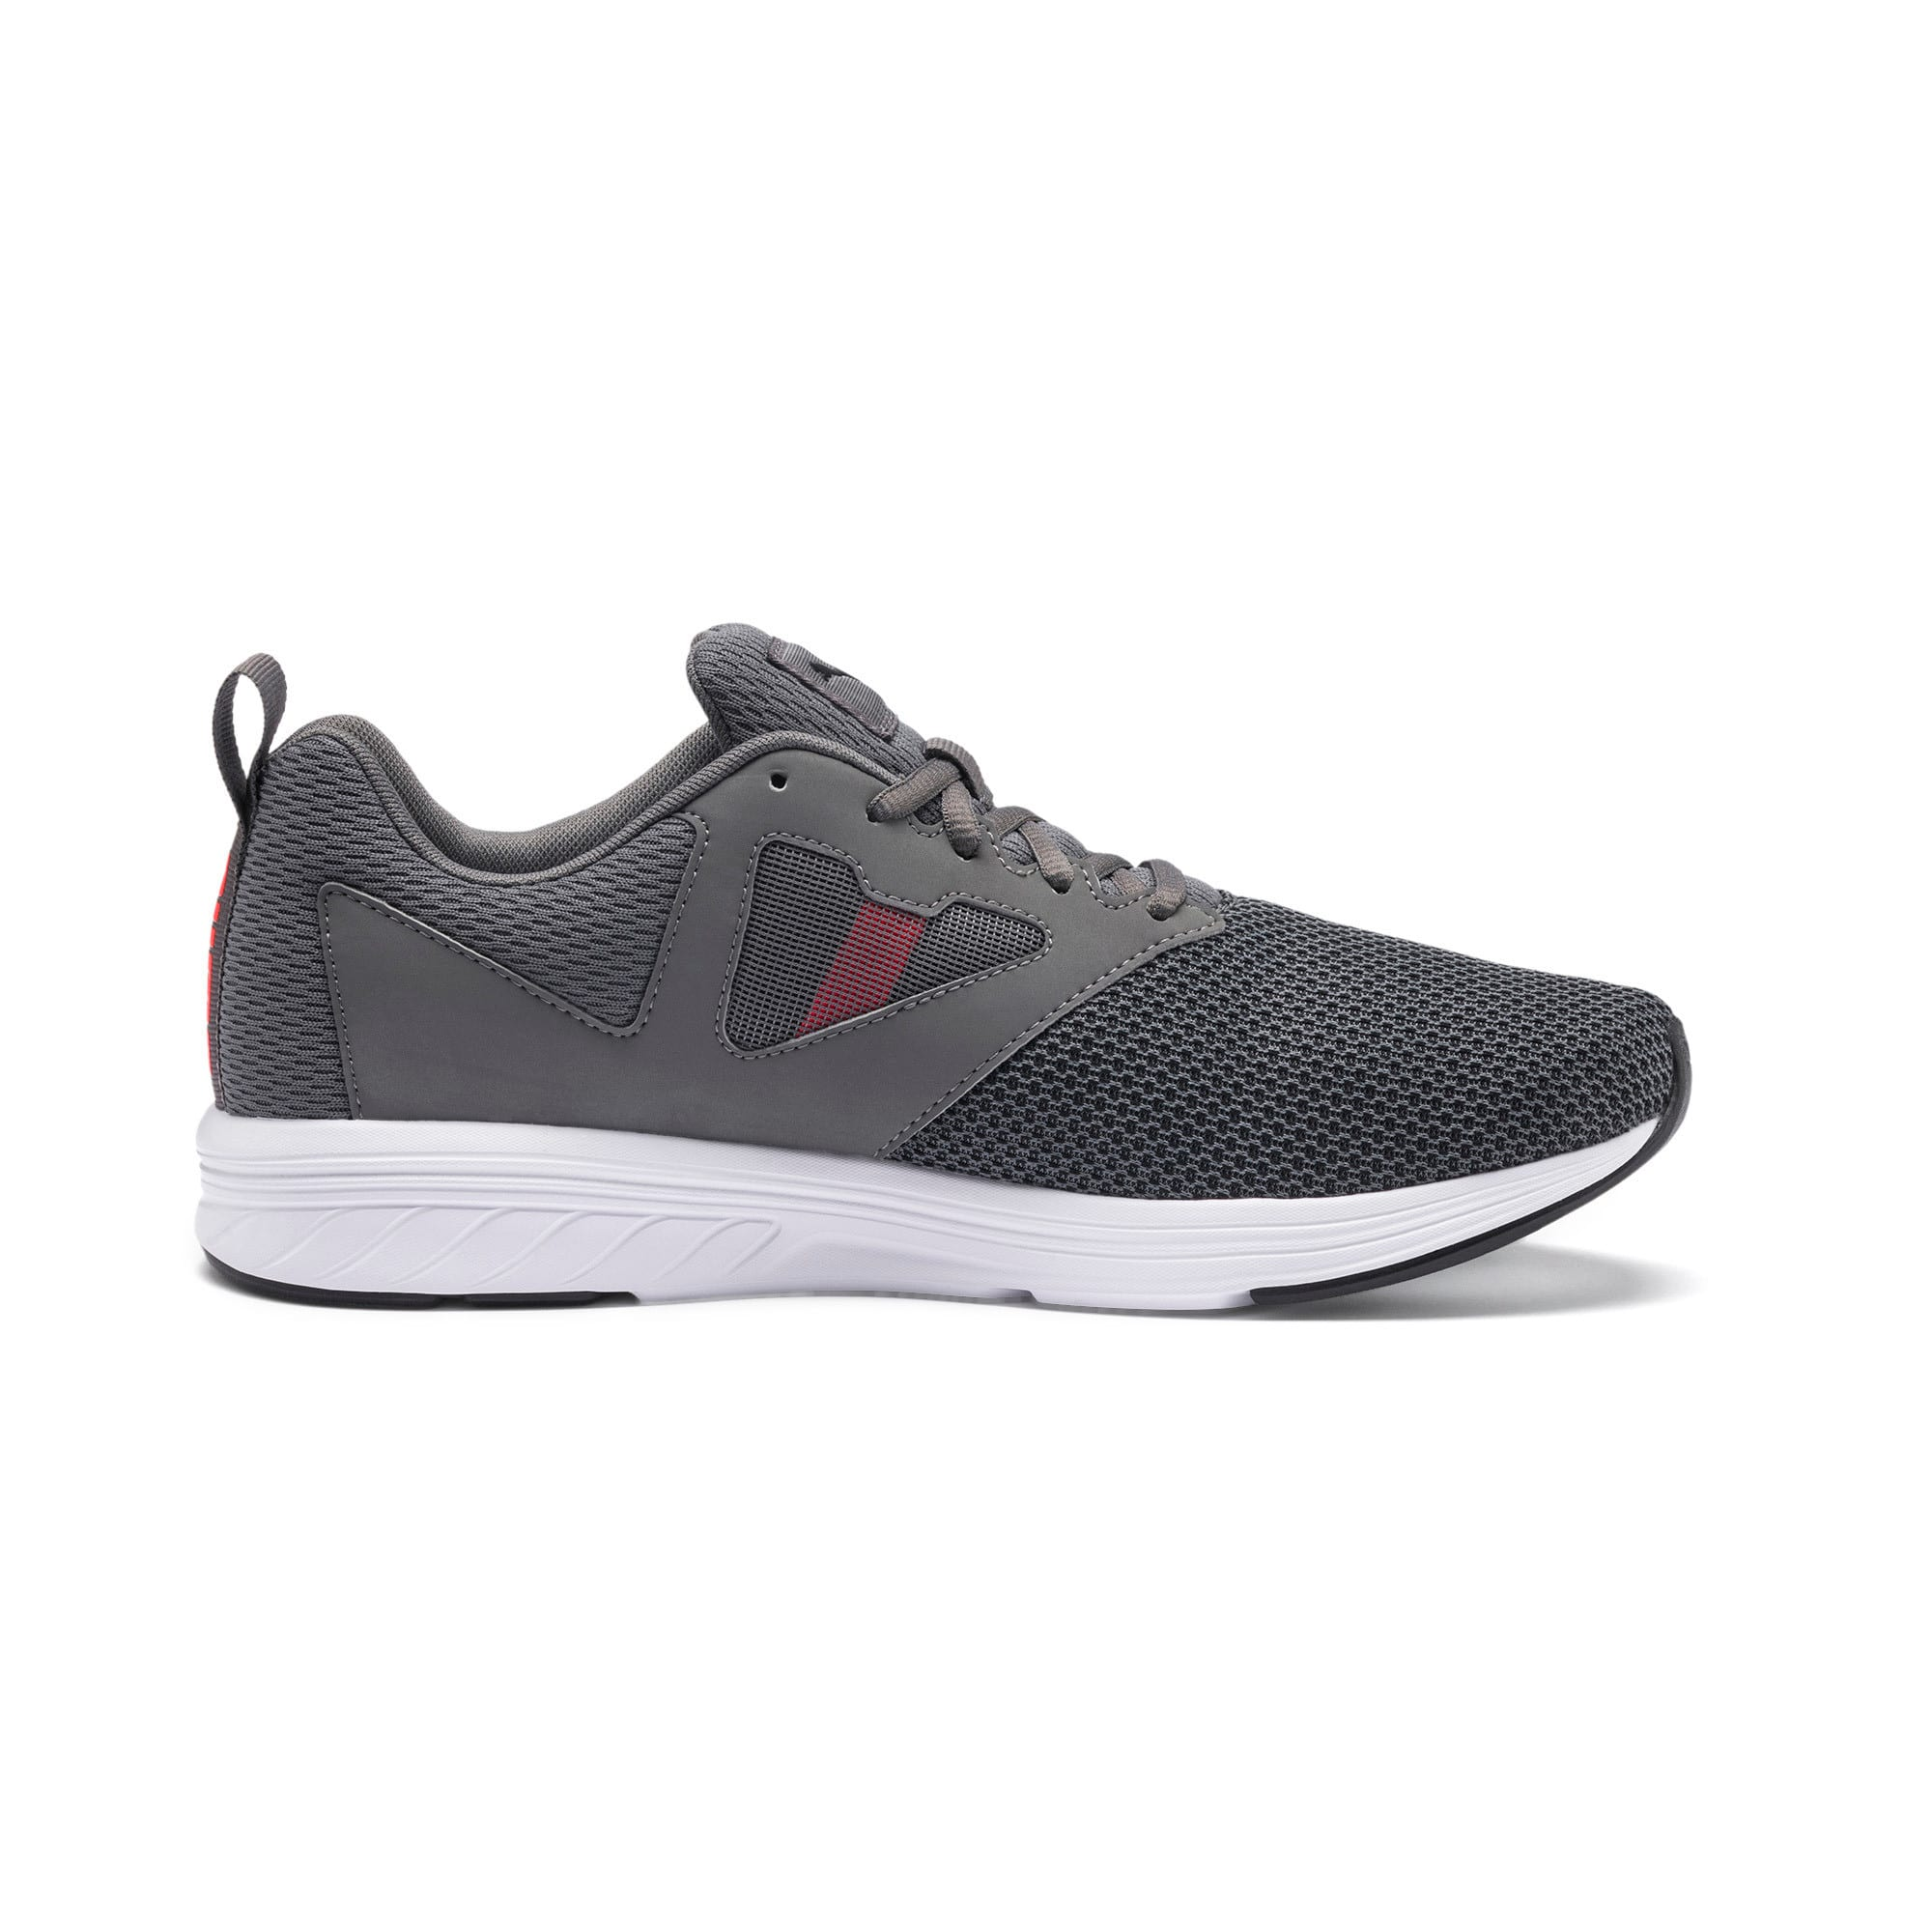 Thumbnail 5 of NRGY Asteroid Running Shoes, CASTLEROCK-Puma White, medium-IND